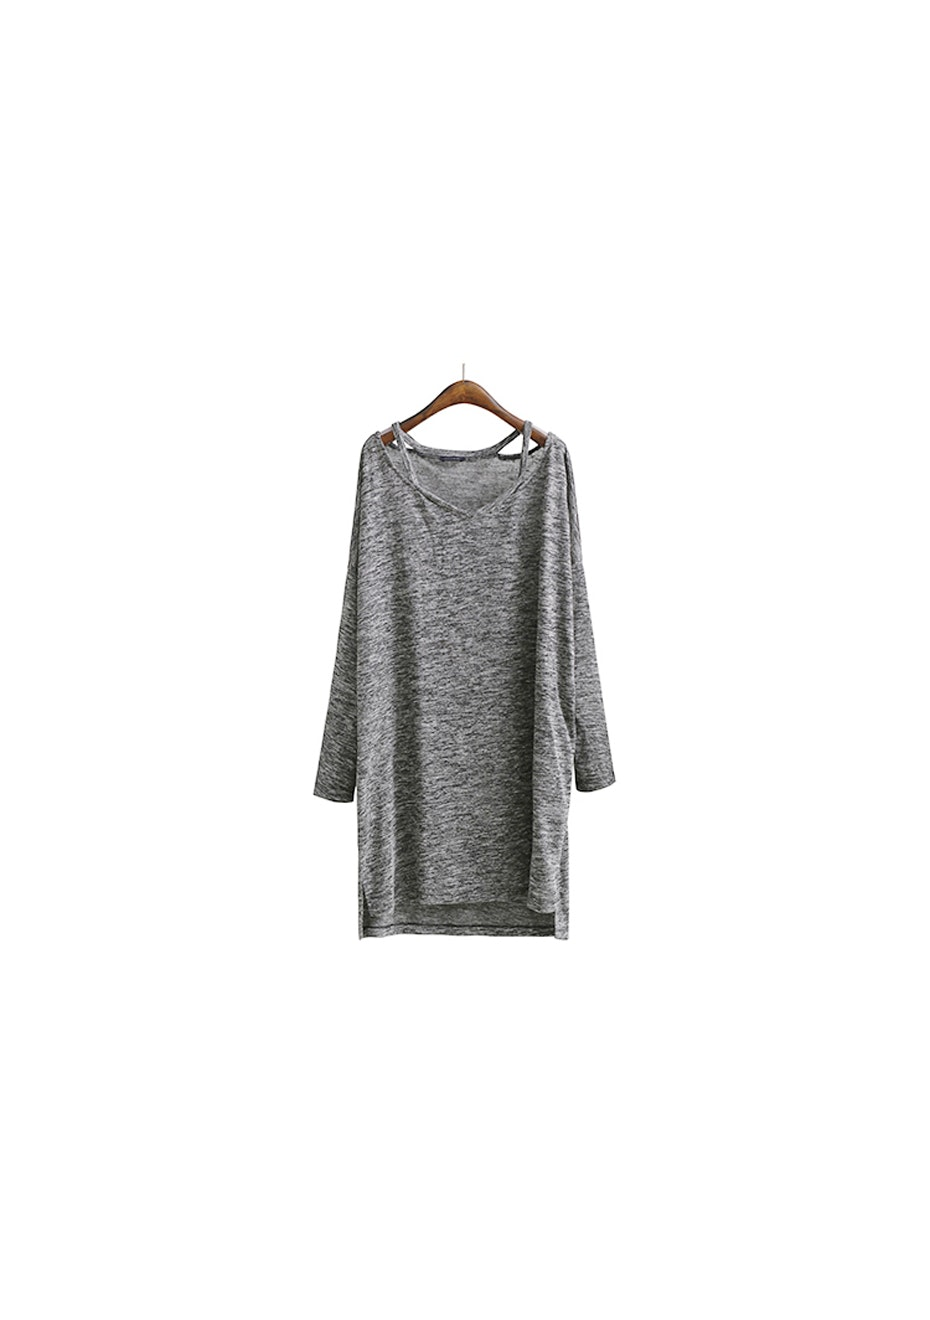 Gaia Knit Tunic - Dark Marle